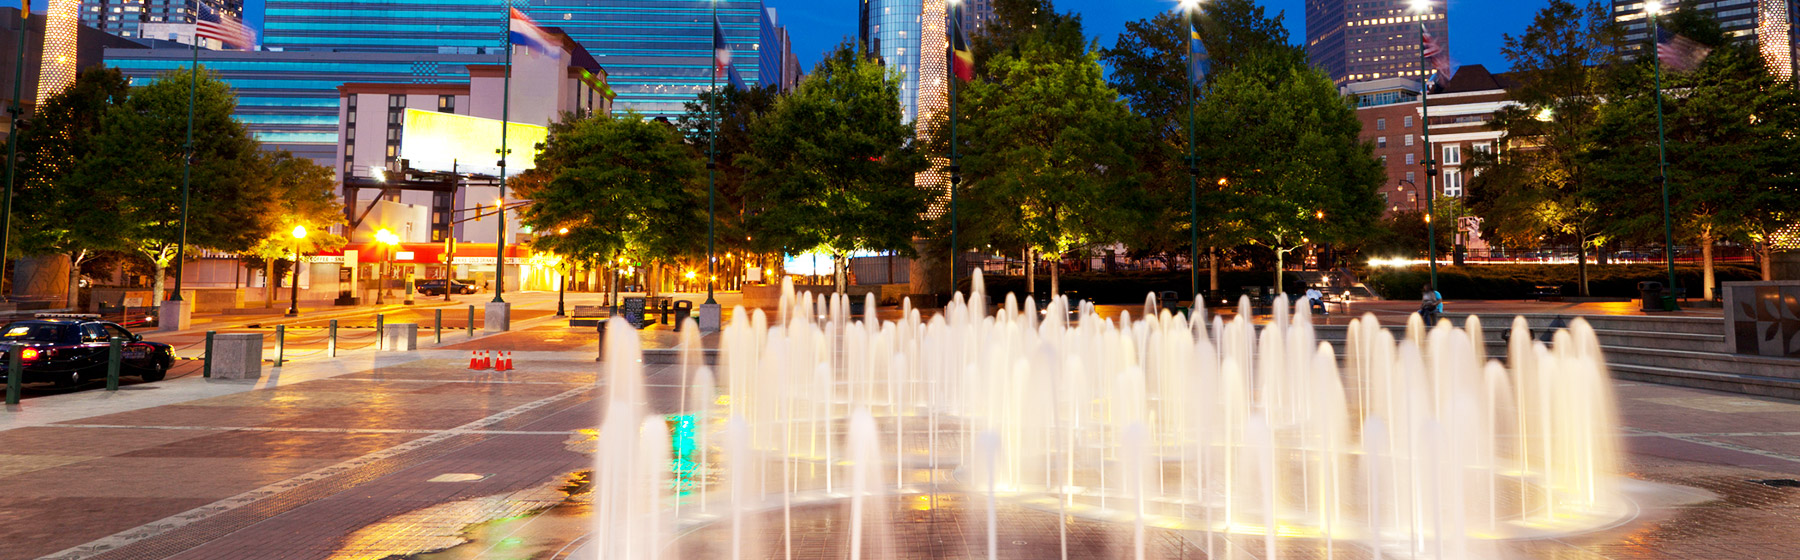 Best Attractions Hotel in Downtown Atlanta